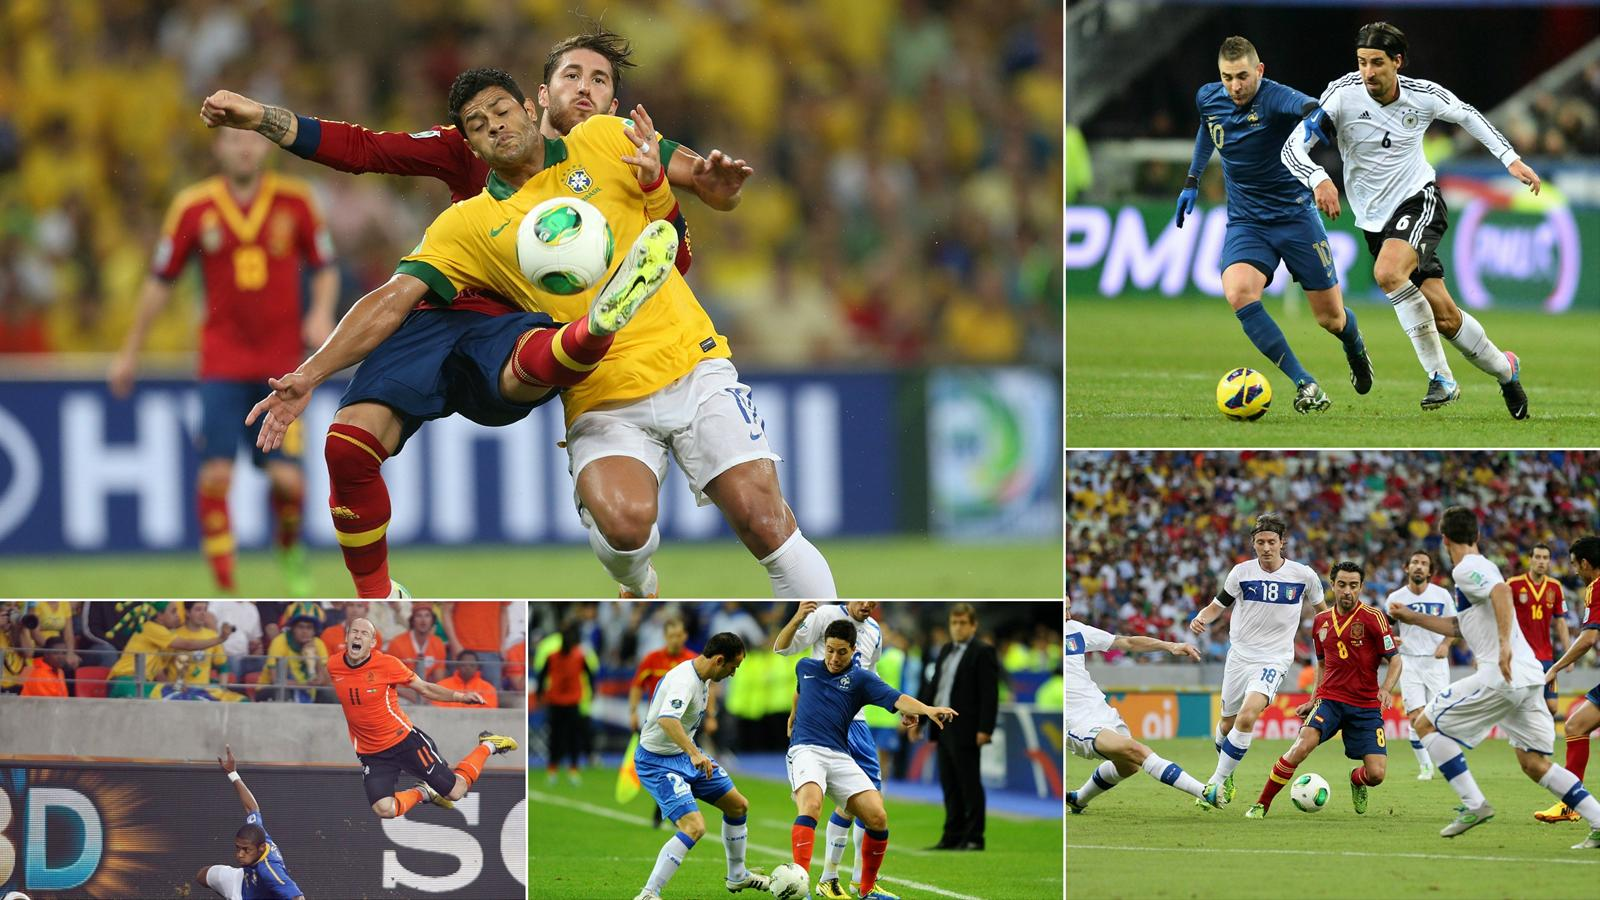 Coupe du monde 2014 une phase finale de r ve ou pas - Resultat coupe d europe de foot ...